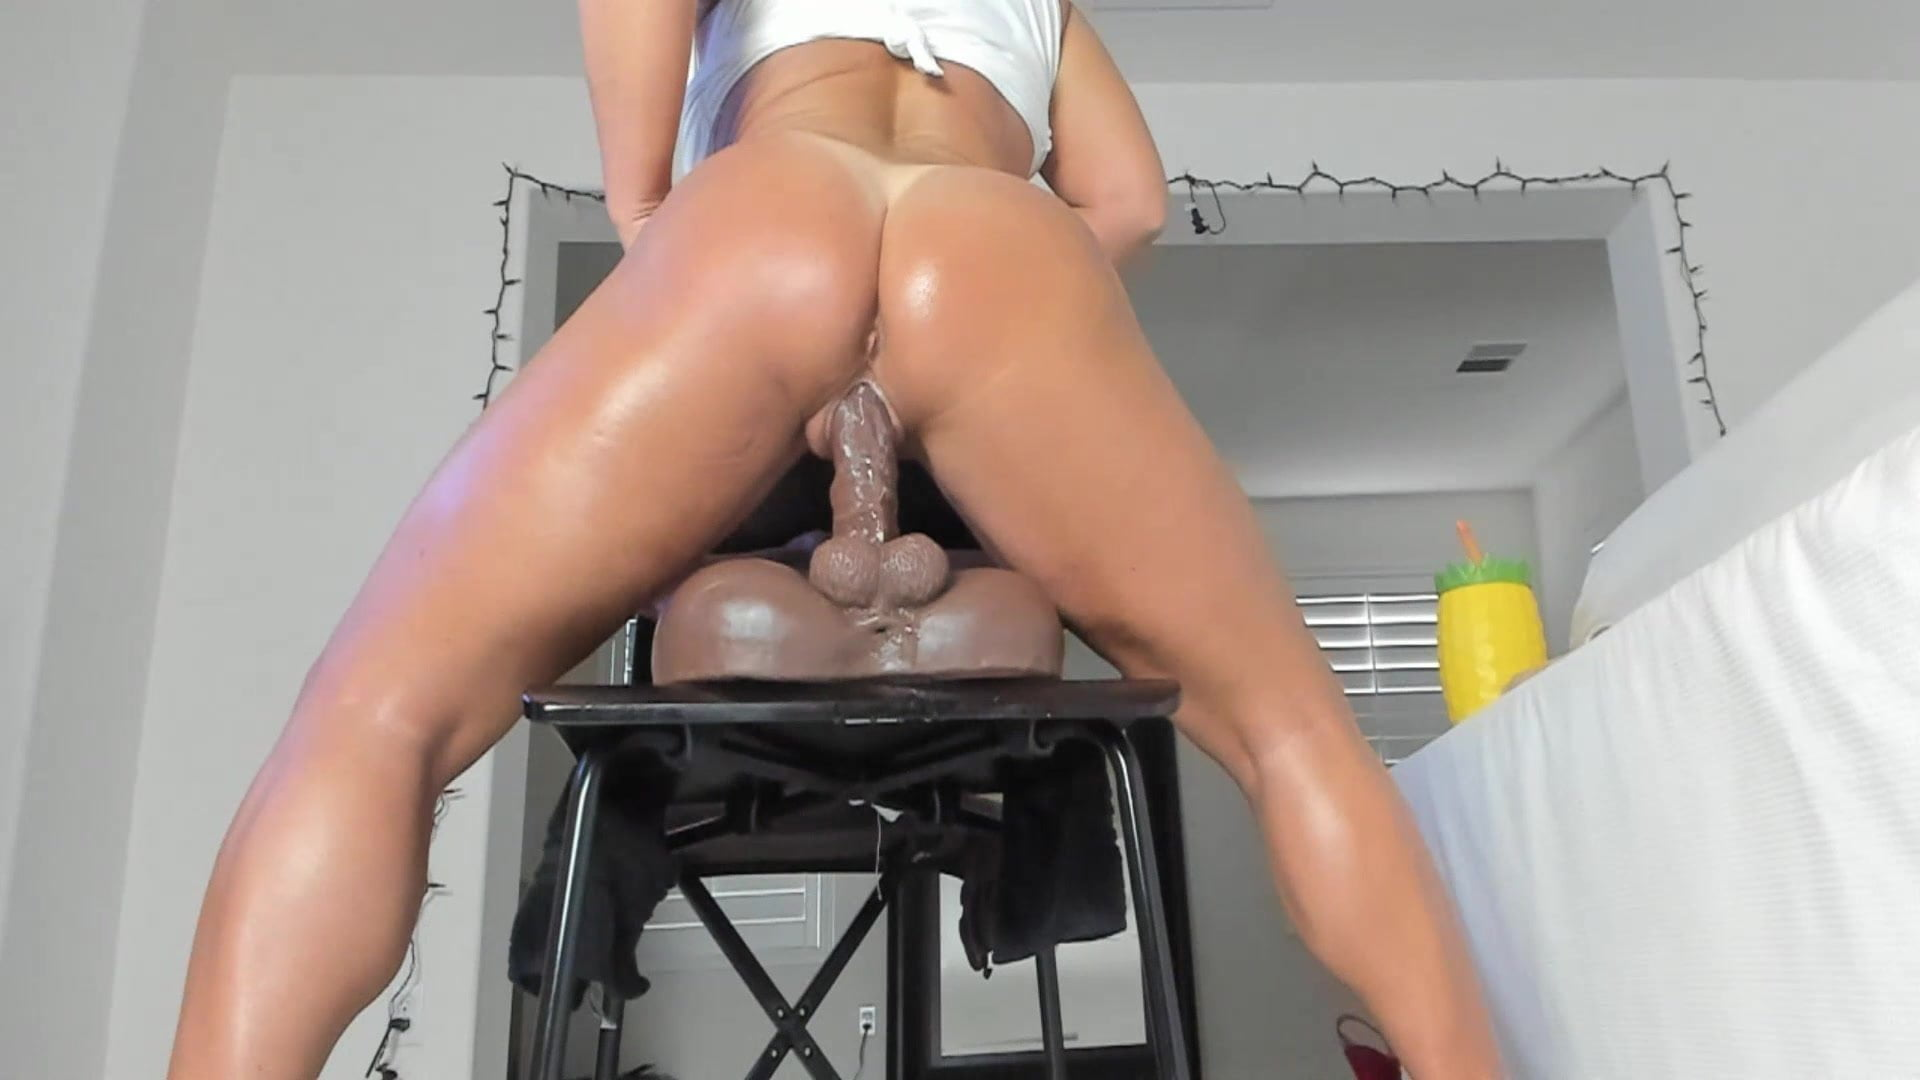 motion Up and dildo down